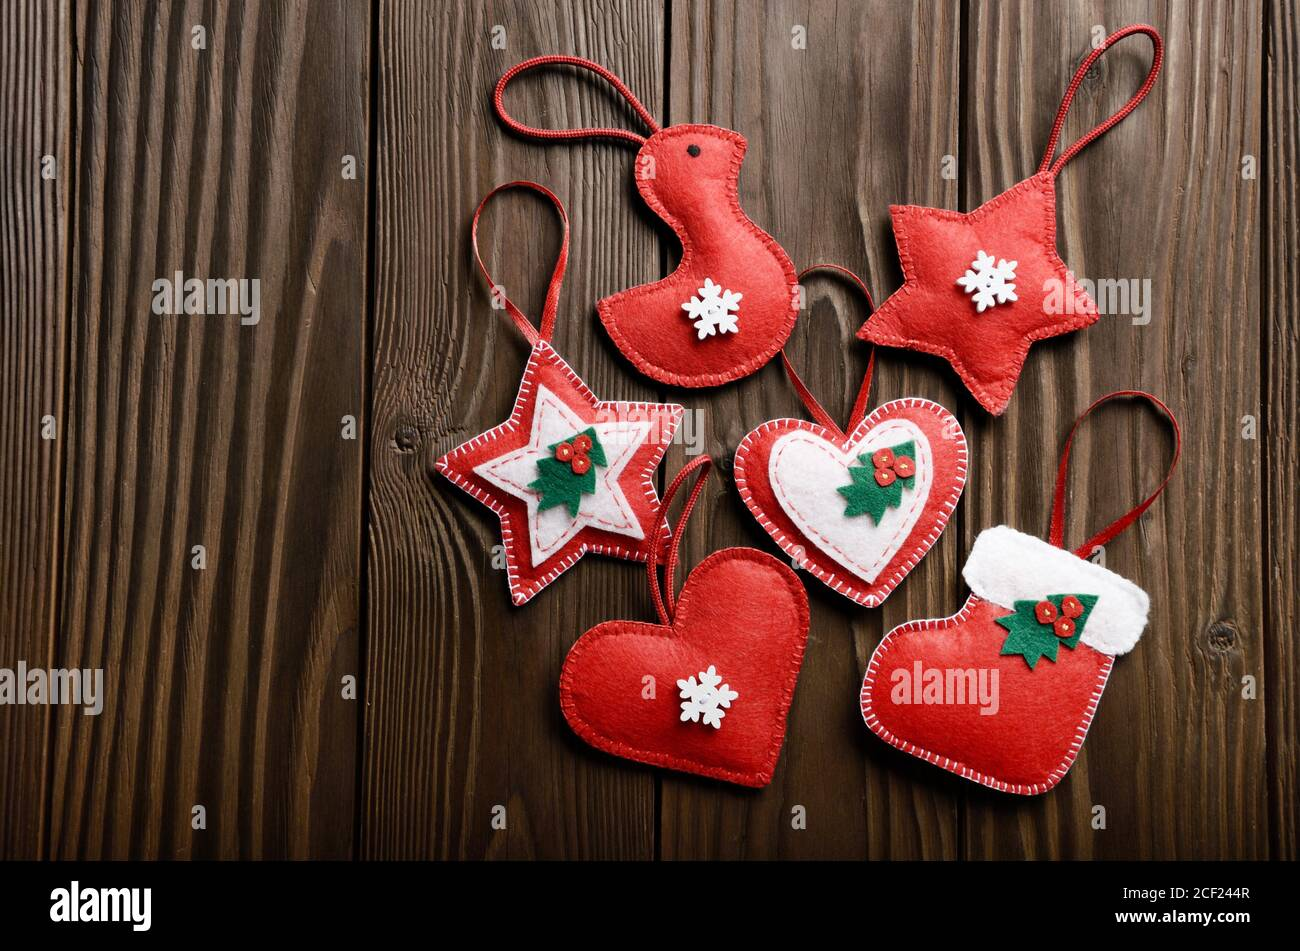 Handmade Rustic Christmas Tree Decorations On Wooden Table Stock Photo Alamy